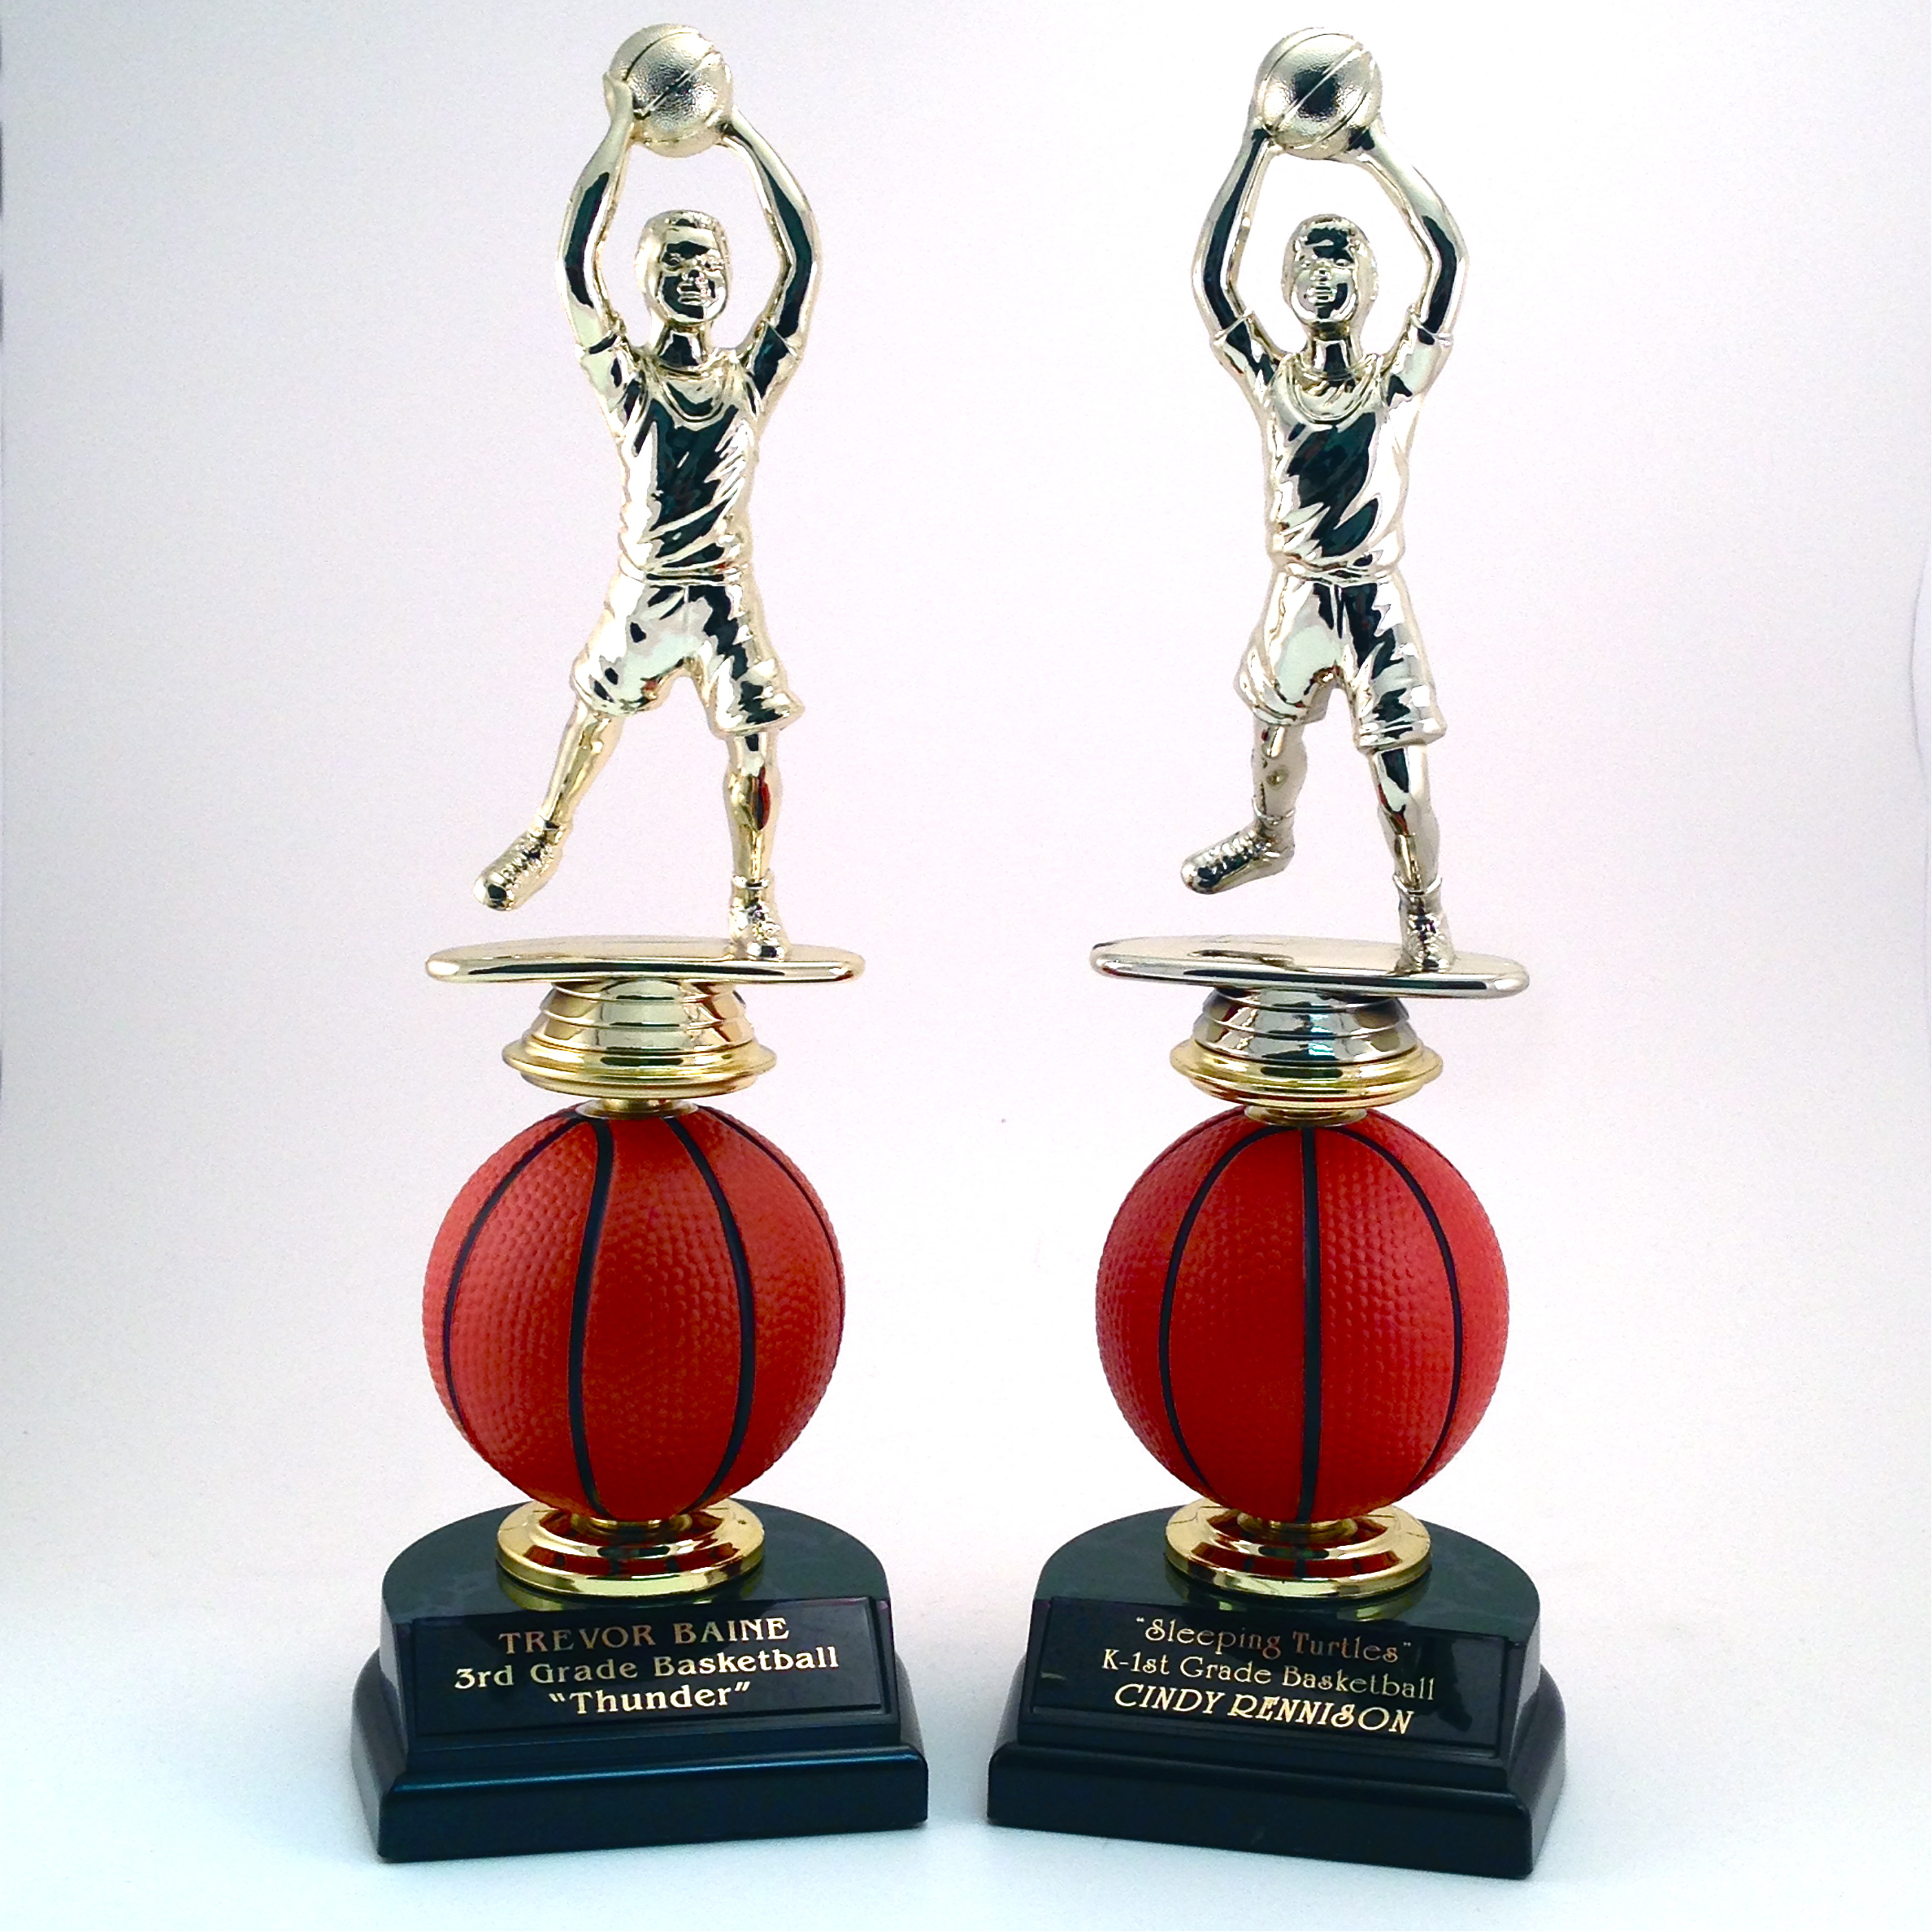 Basketball Player on Spinning Ball -  $9.96 each  (Includes tax & engraving). Specify Male or Female. [ITEM#:  14J ]